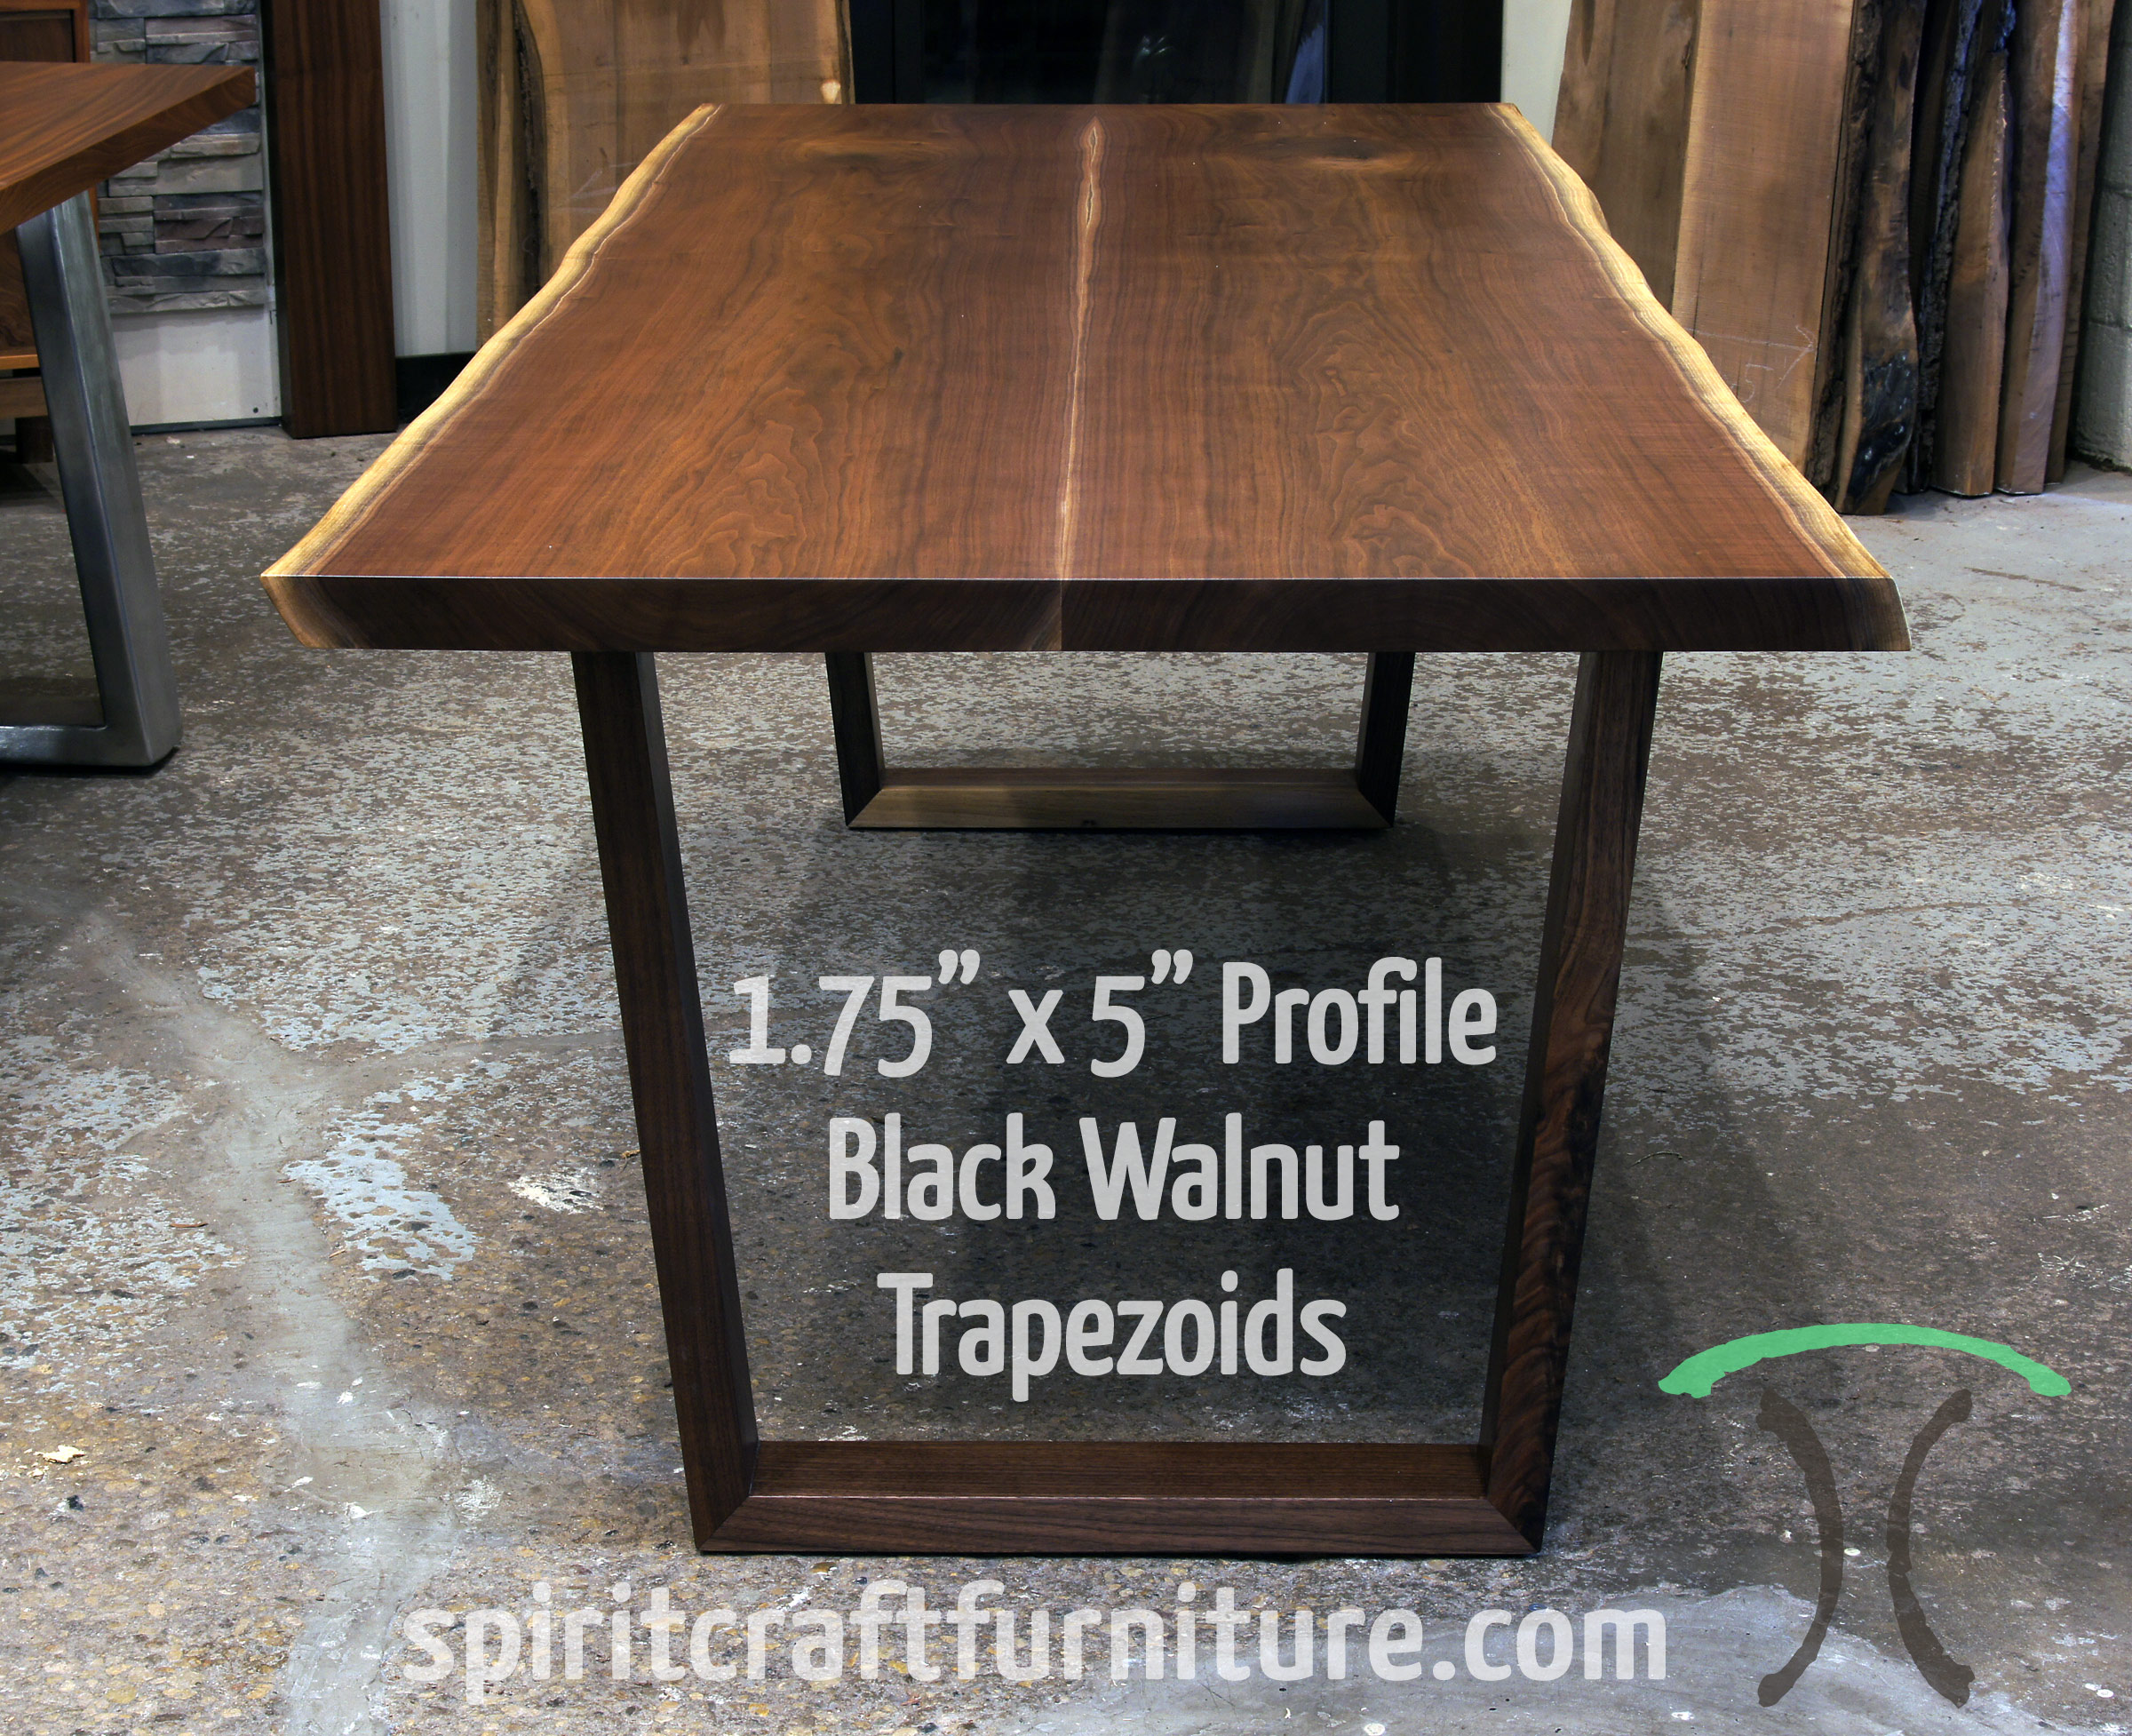 Solid Black Walnut Tzoid Legs Wider At The Top On Live Edge Dining Table